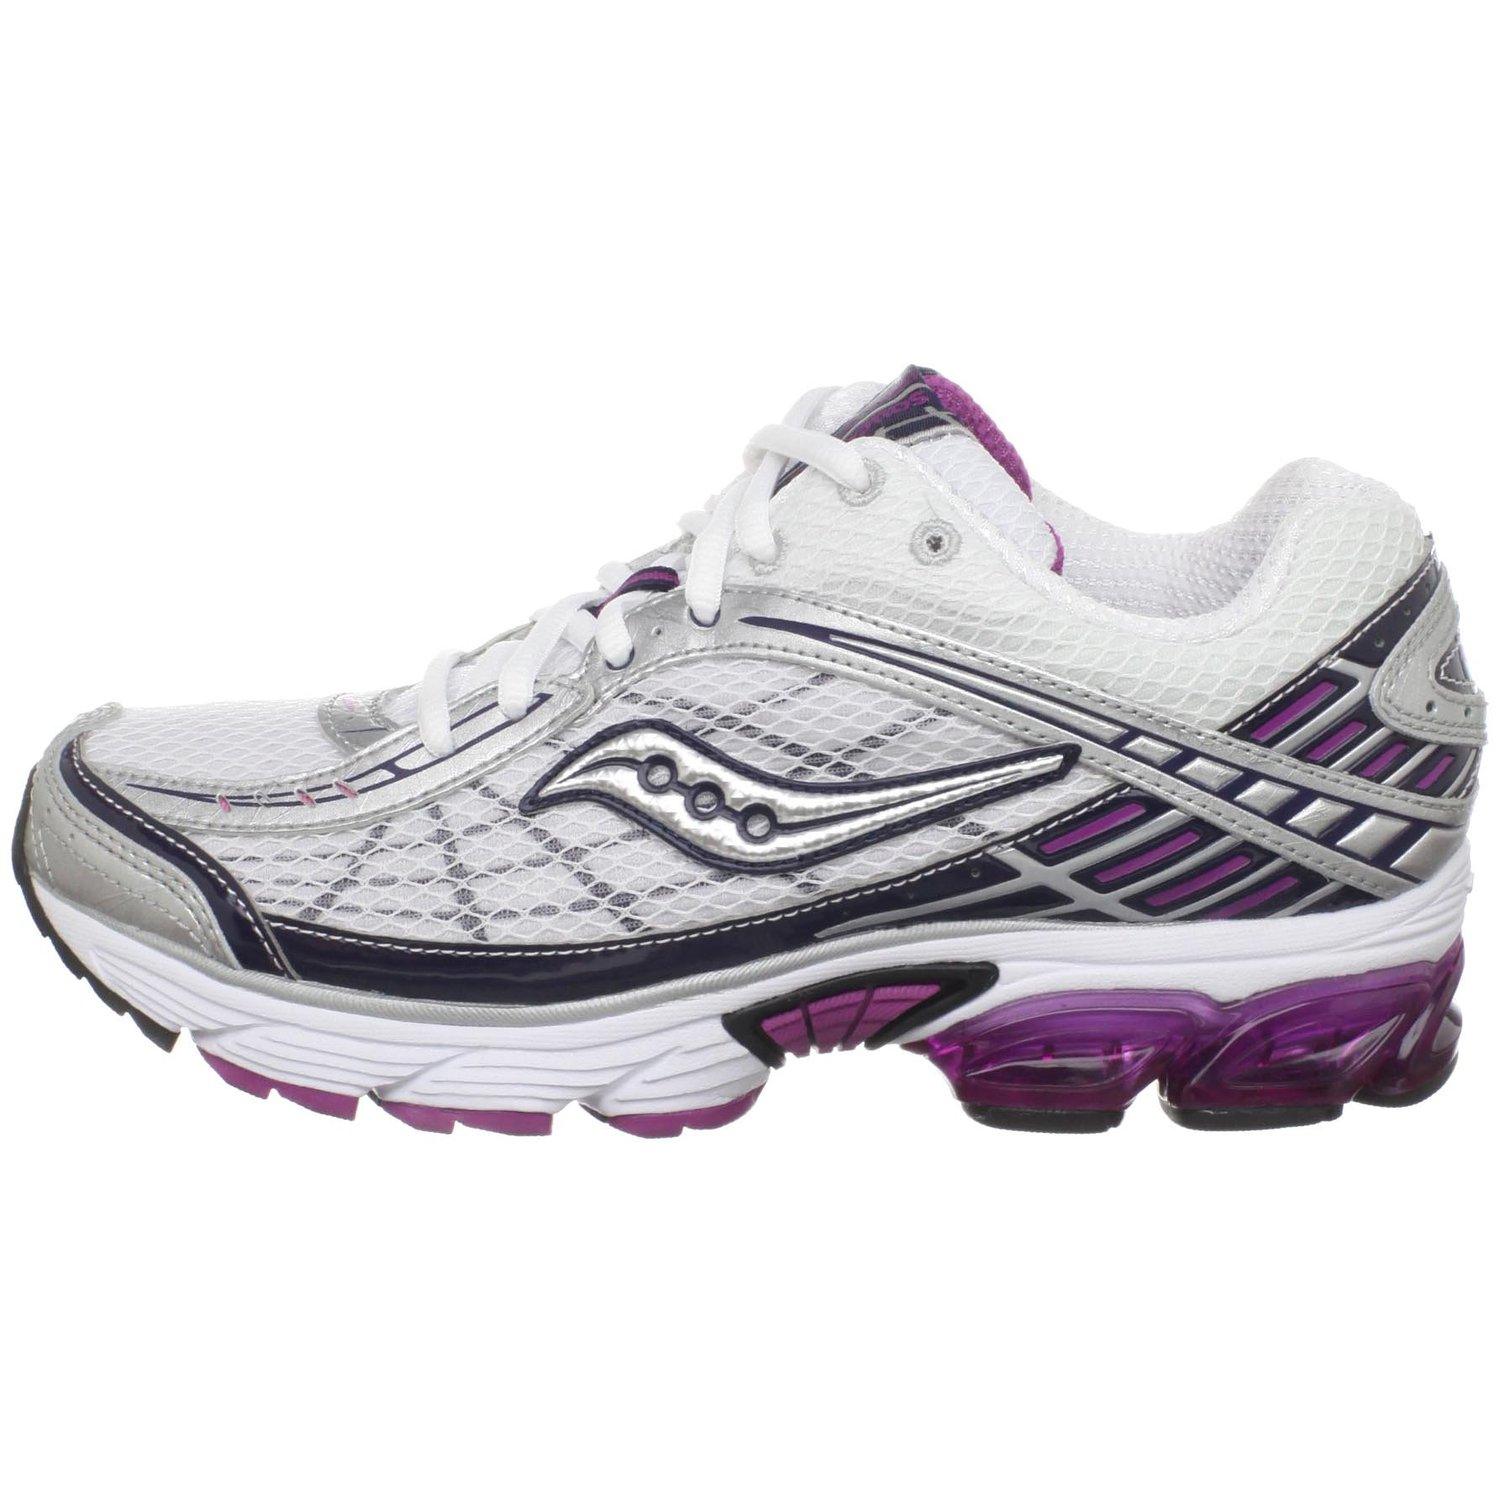 Saucony Women's Grid Raider Running Shoe6